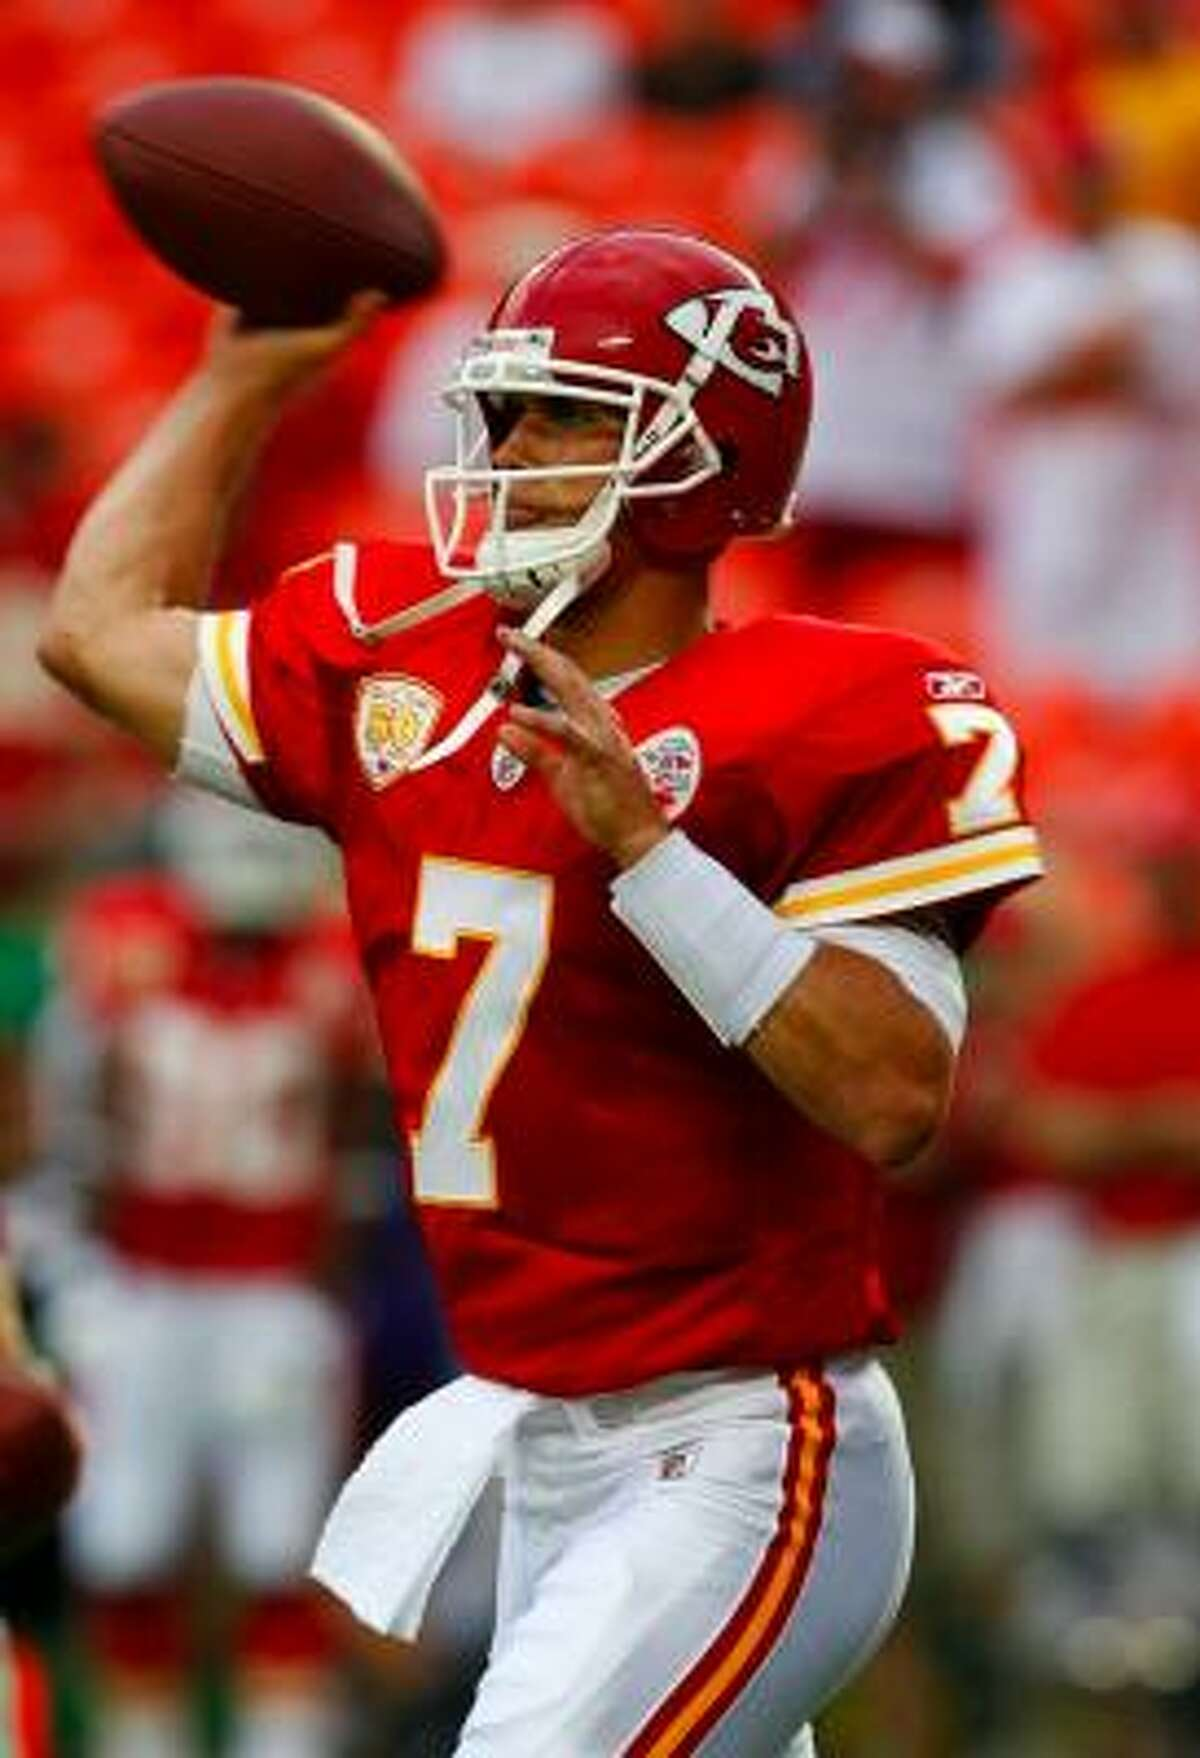 Quarterback Matt Cassel signed with the Chiefs in the offseason.